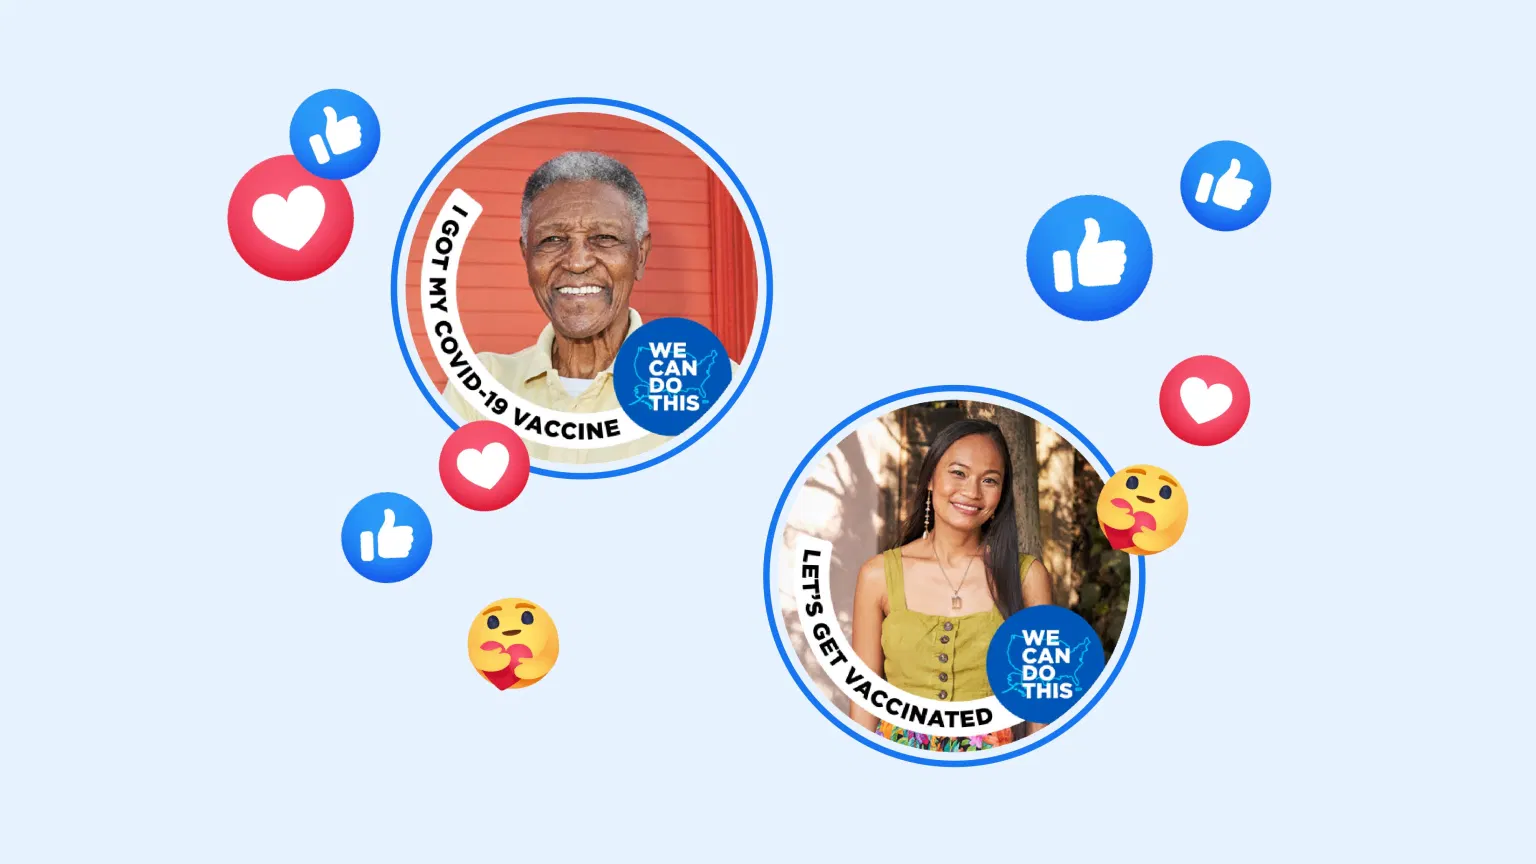 Facebook Launches Profile Frames to Encourage Covid-19 Vaccination